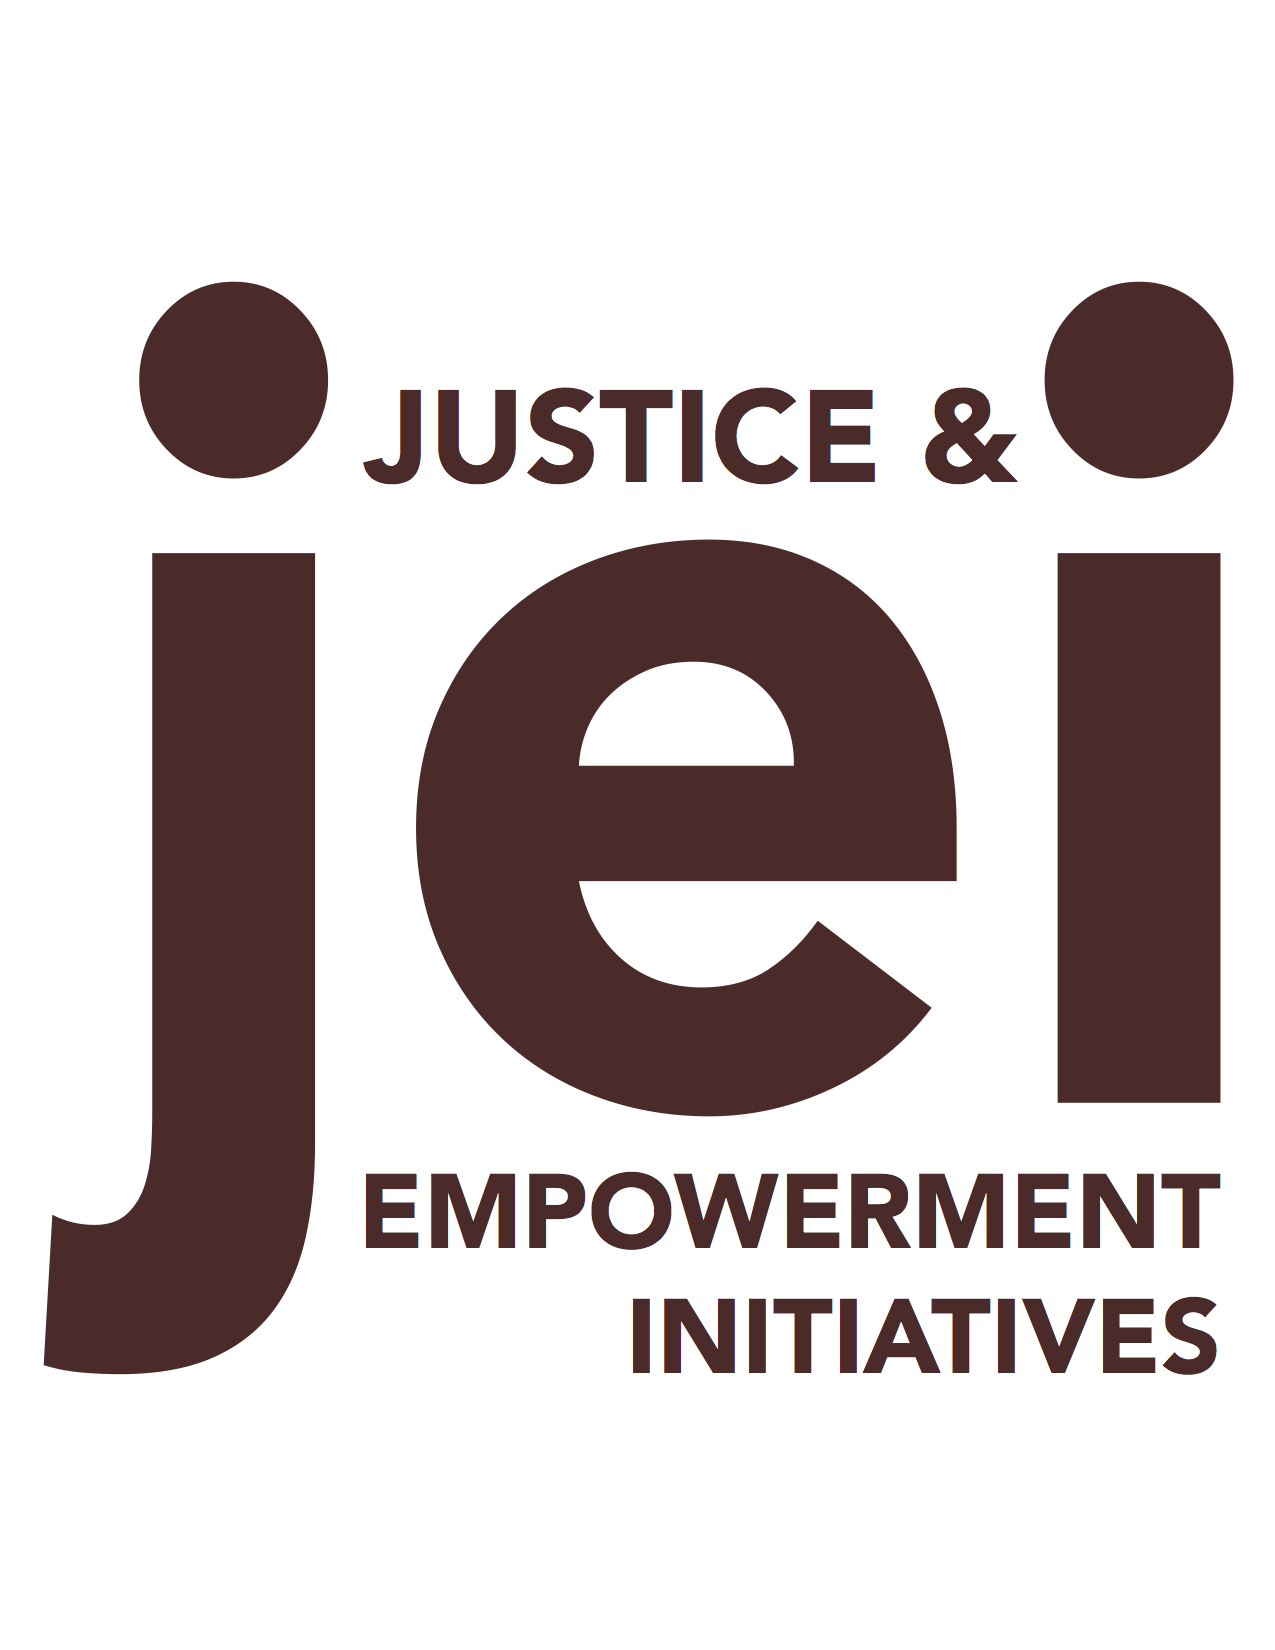 Justice & Empowerment Initiatives